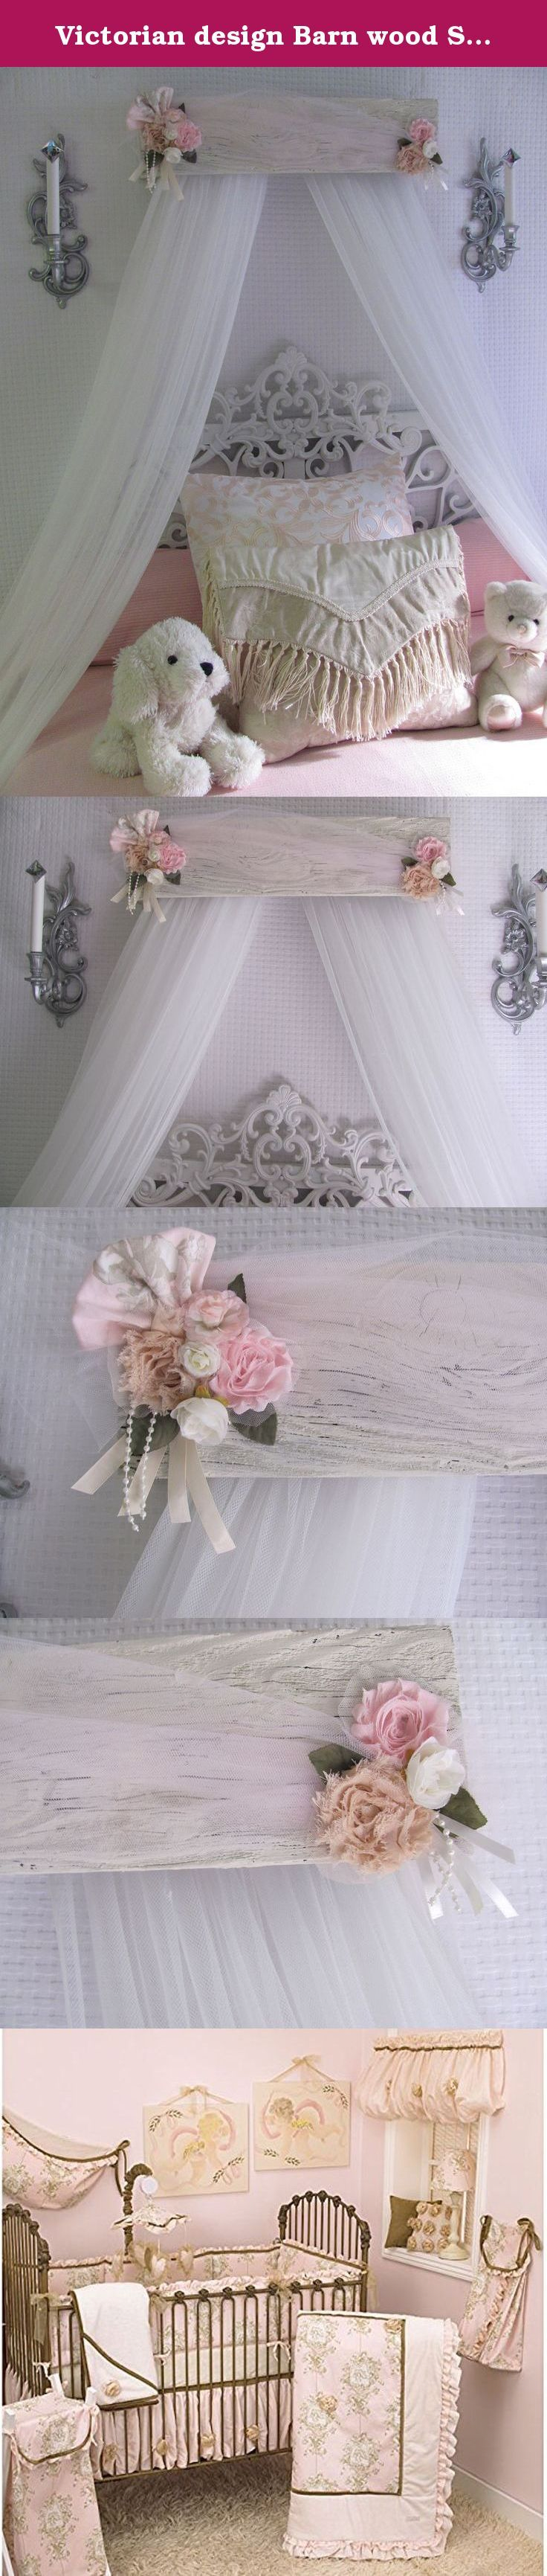 """Victorian design Barn wood Shabby Chic Bed bedroom CriB canopy rustic decor custom burlap lace pearls French Paris So Zoey Boutique SALE. Handmade wooden custom antique barn wood shabby chic bedroom canopy. Pinks tan, white, cream/ivory. We are excited to be expanding our home decor selection with rustic Shabby chic wooden creations. Made by Italian designer and woodcrafter Antonio Palella. Offered in 24"""" or 30"""" or 40"""" sizes. The canopy in the listing (shown in first photo) is 30"""" over a..."""